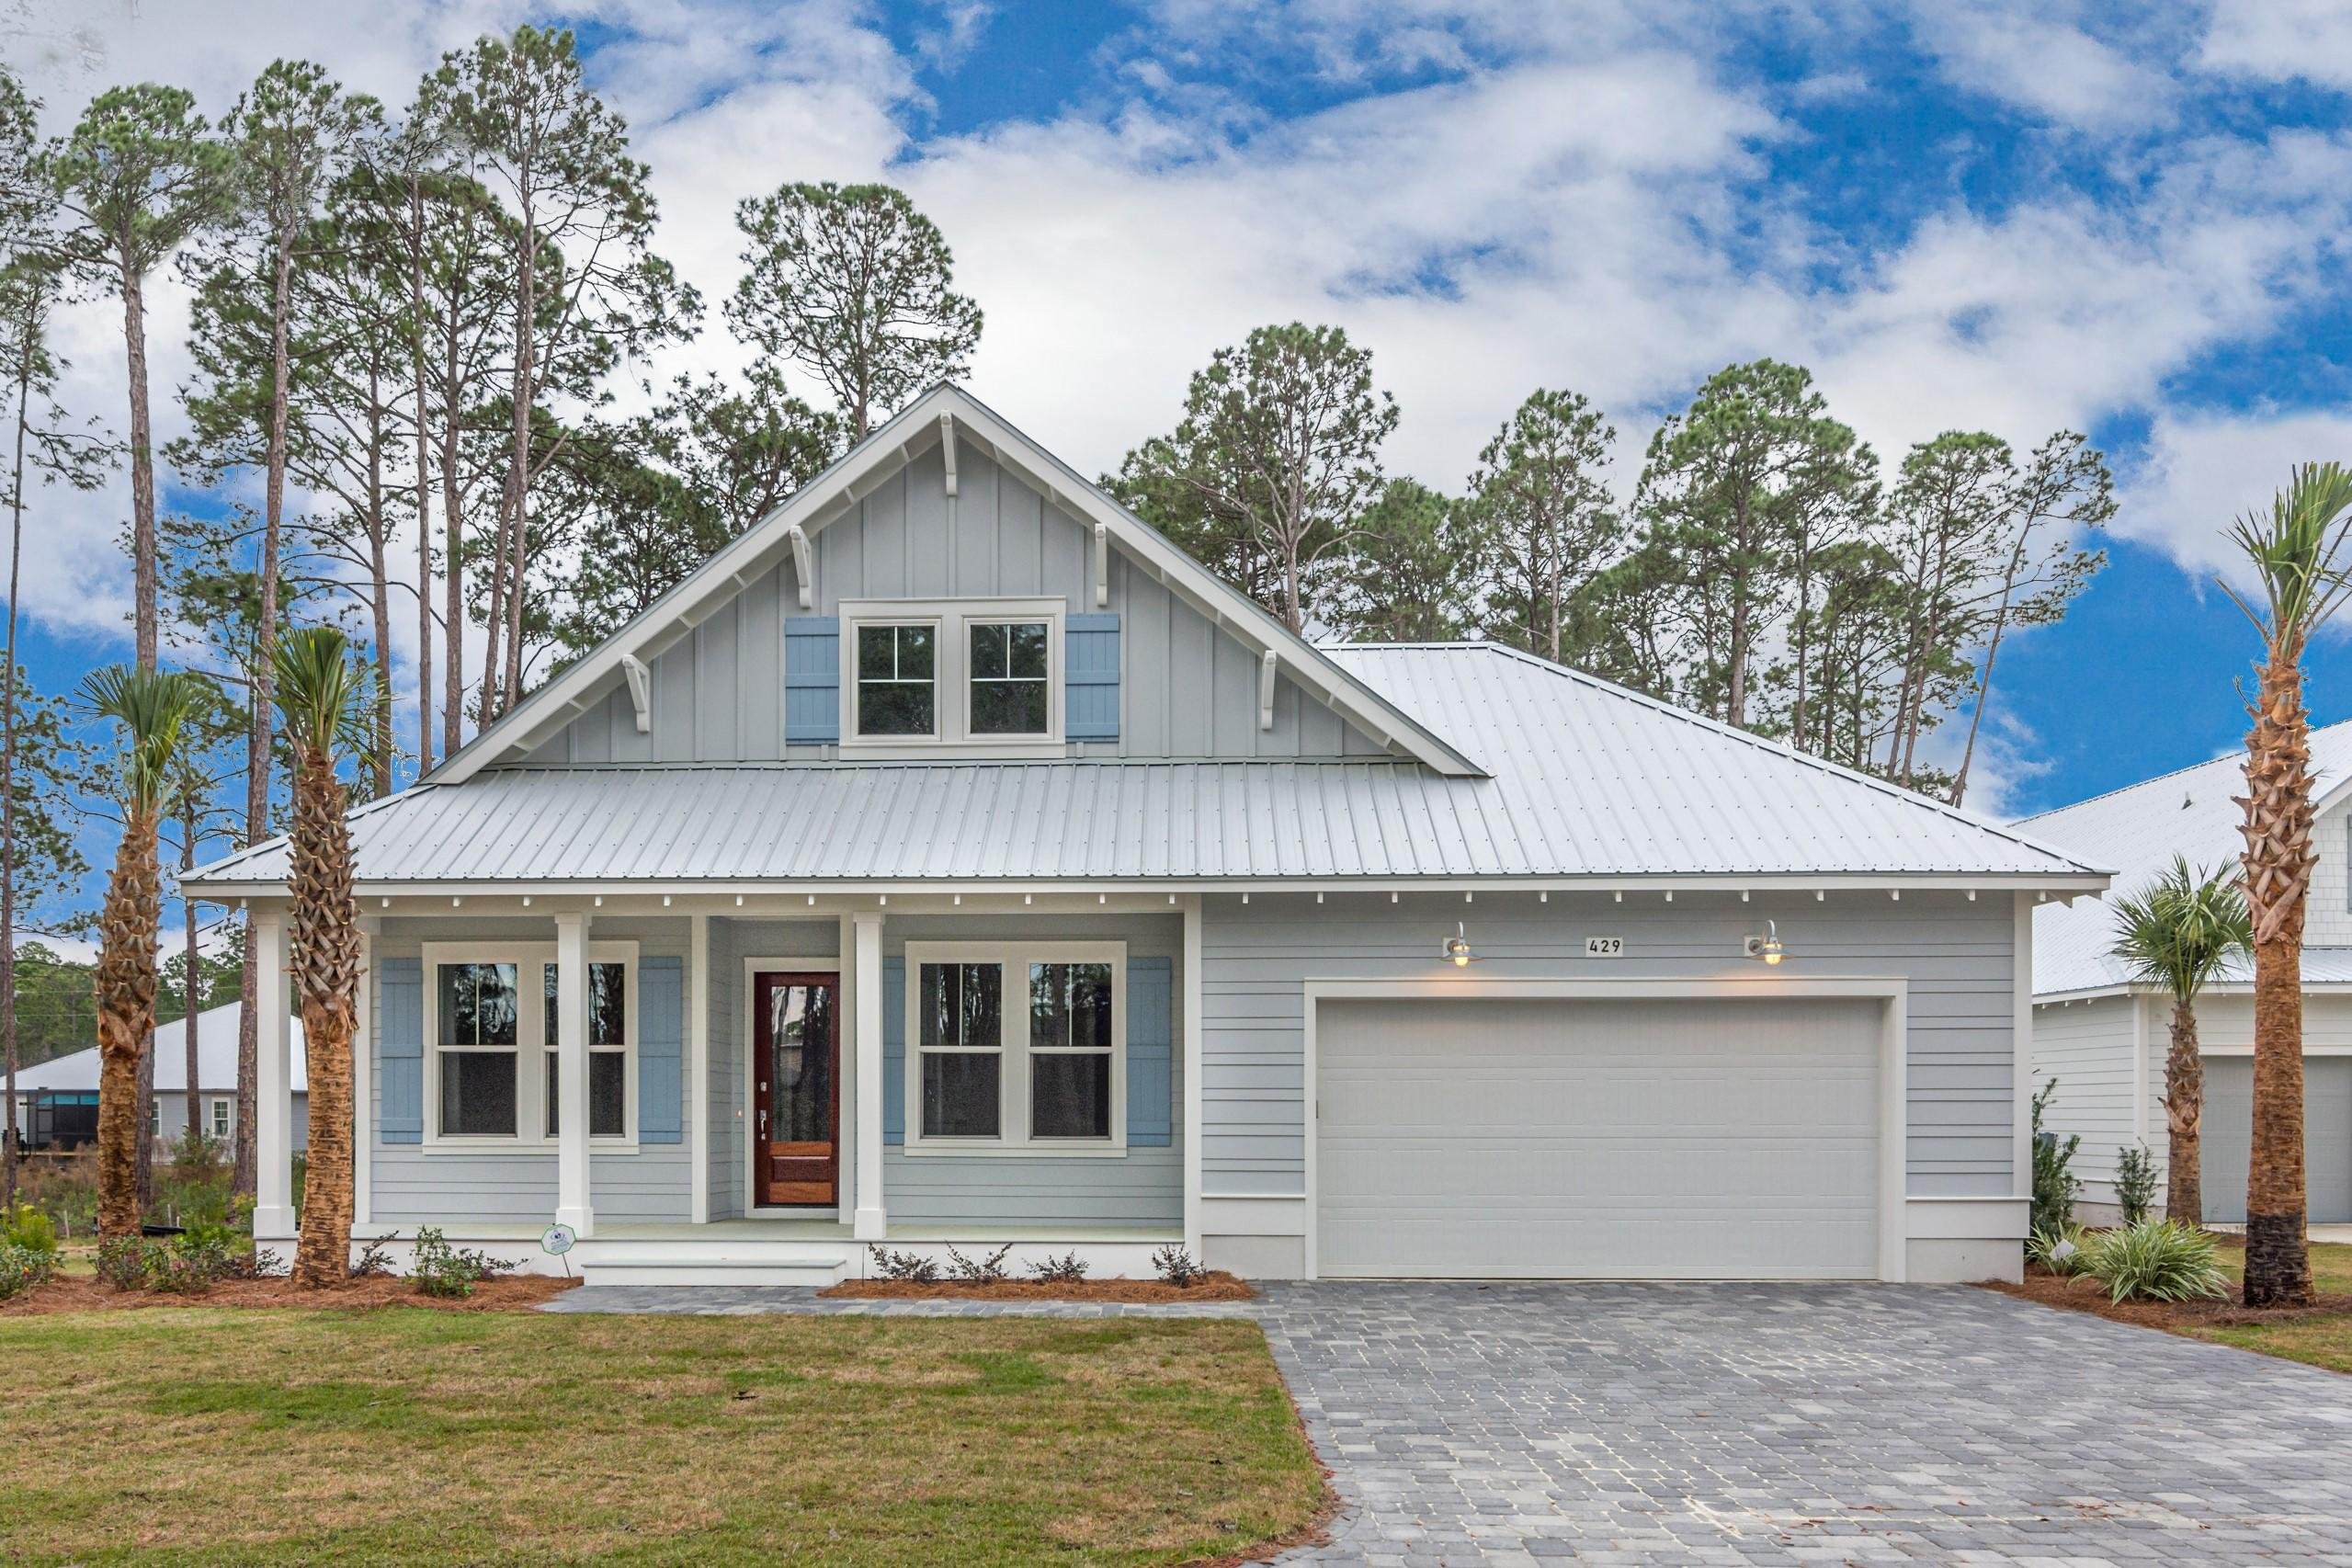 NEW CONSTRUCTION in Dune Allen Beach located on Hillcrest Drive! HILLCREST COTTAGES offers well appointed two-story homes designed with spacious, ground floor living in mind. It's rare to find homes that provide this much living space on the first level.  The main level offers covered front porch, an open living area - kitchen, walk-in pantry, dining area, with the living room opening to a large covered rear porch. The master offers a spacious master bath with a large walk-in closet. The ground floor has two additional bedrooms, along with a mudroom, laundry room and attached two-car garage. The second level has an additional bedroom/bonus room, full bath and large storage closet. Quality Finishes - Wonderful Location.